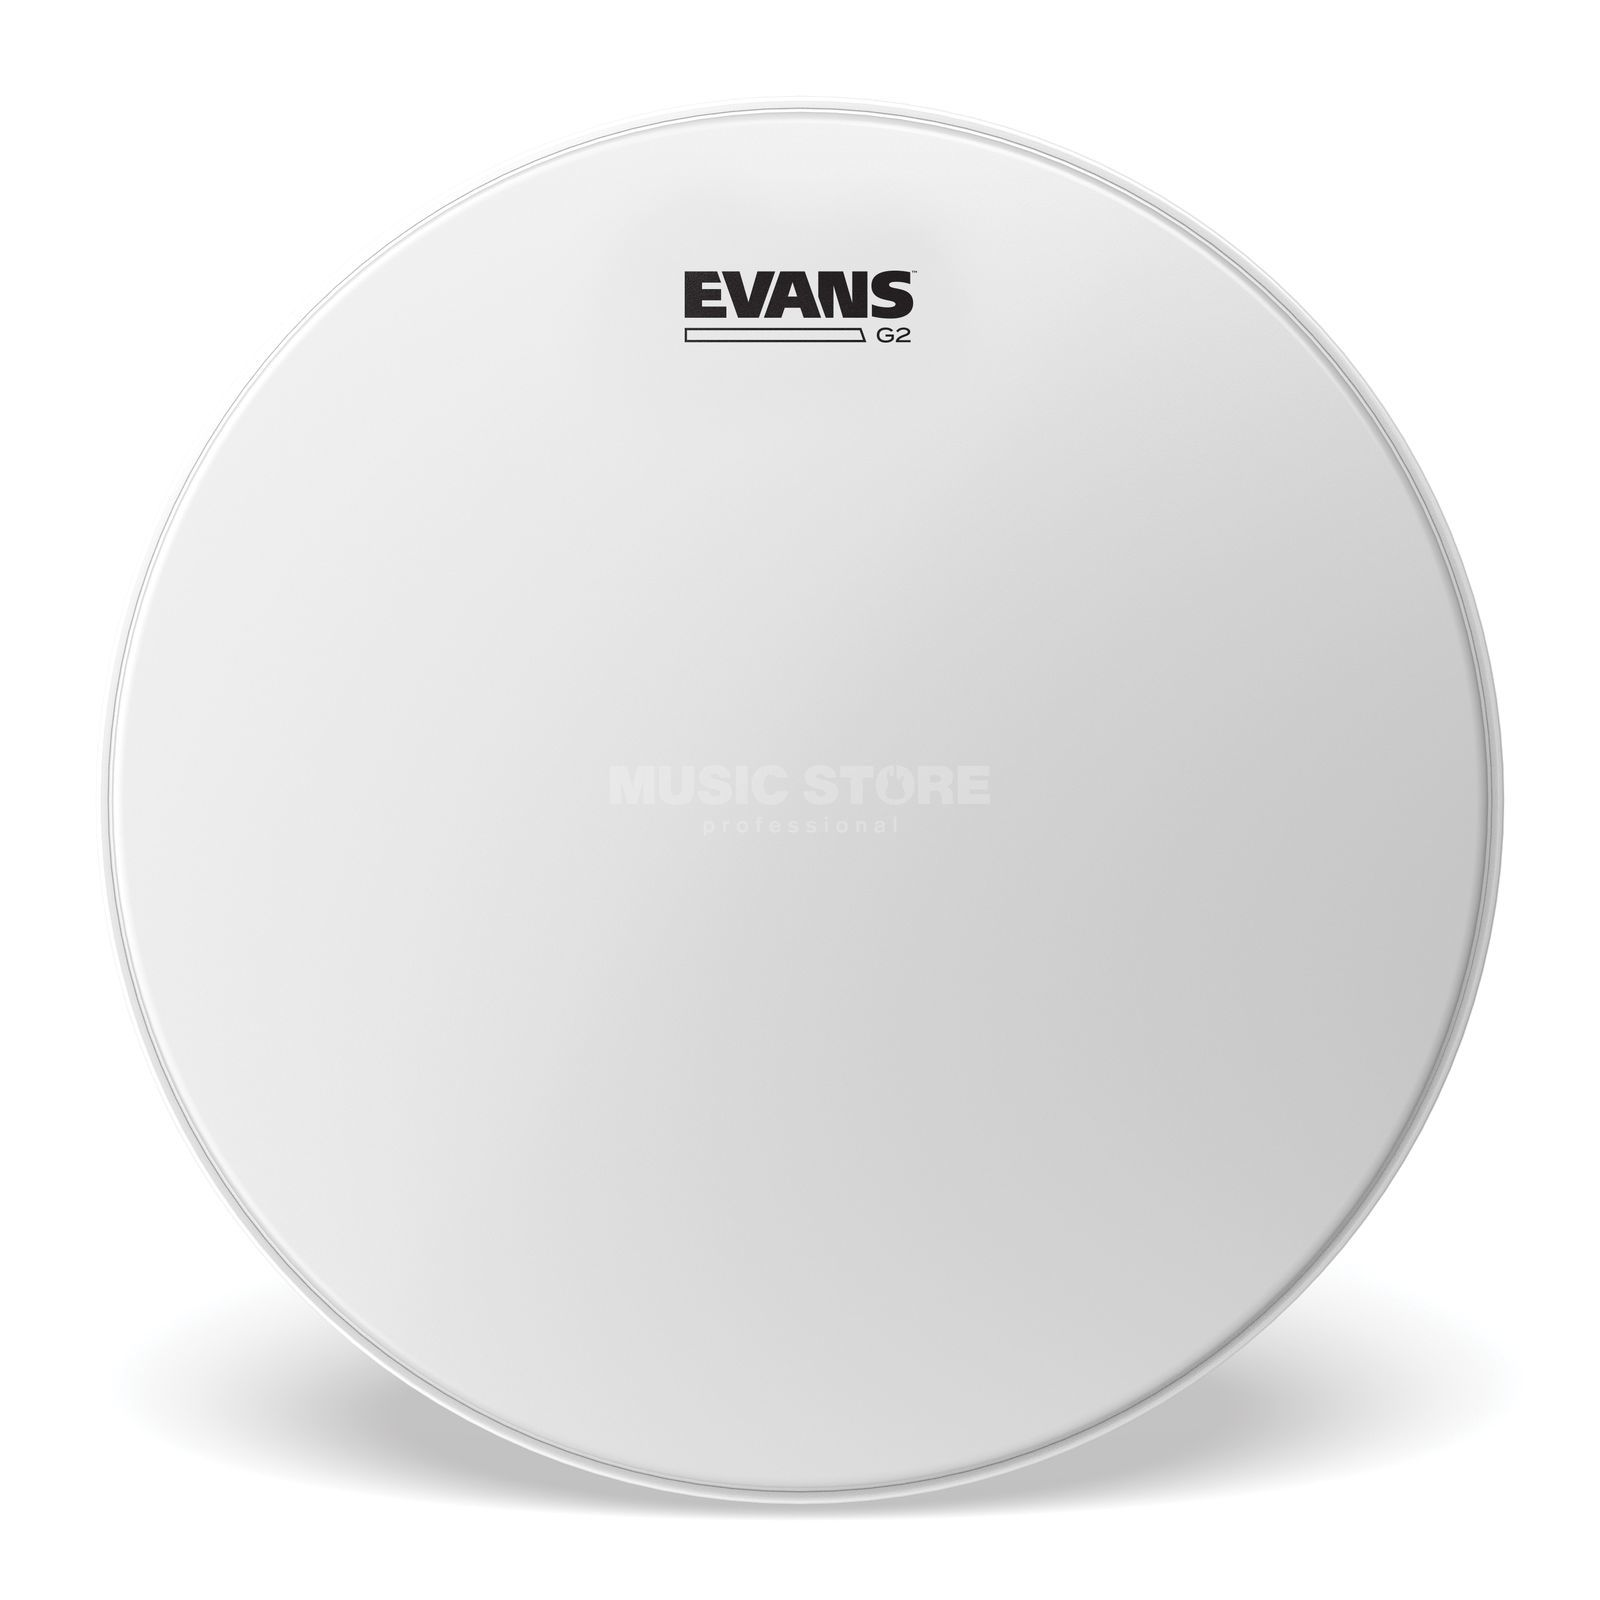 "Evans G2 Coated 18"", B18G2, Tom Batter Produktbild"